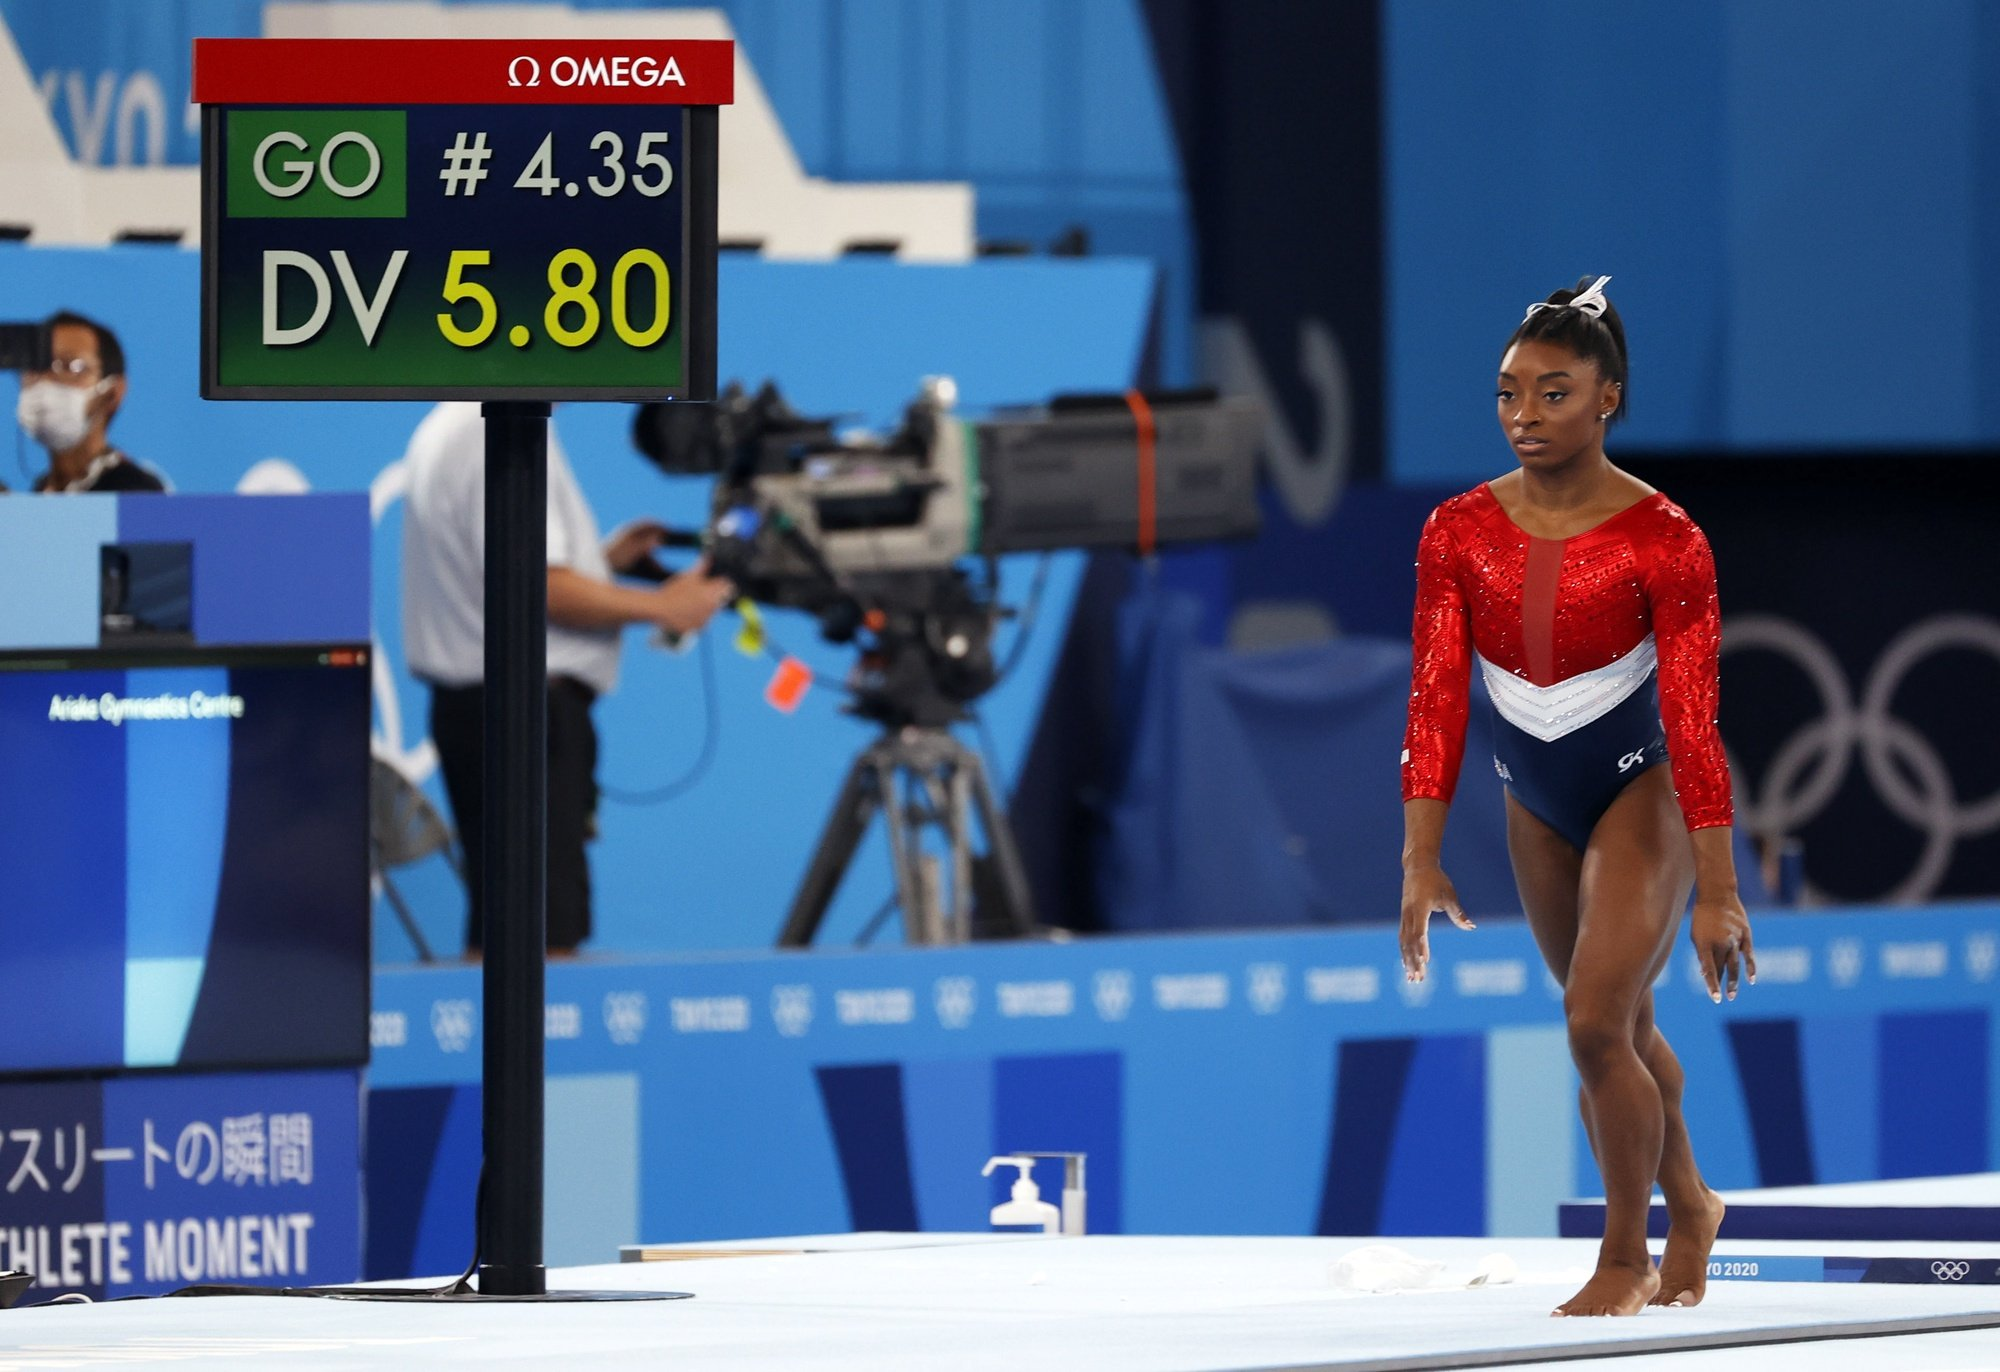 epa09370179 Simone Biles of the USA performs on the Vault during the Women's Team final during the Artistic Gymnastics events of the Tokyo 2020 Olympic Games at the Ariake Gymnastics Centre in Tokyo, Japan, 27 July 2021.  EPA/HOW HWEE YOUNG